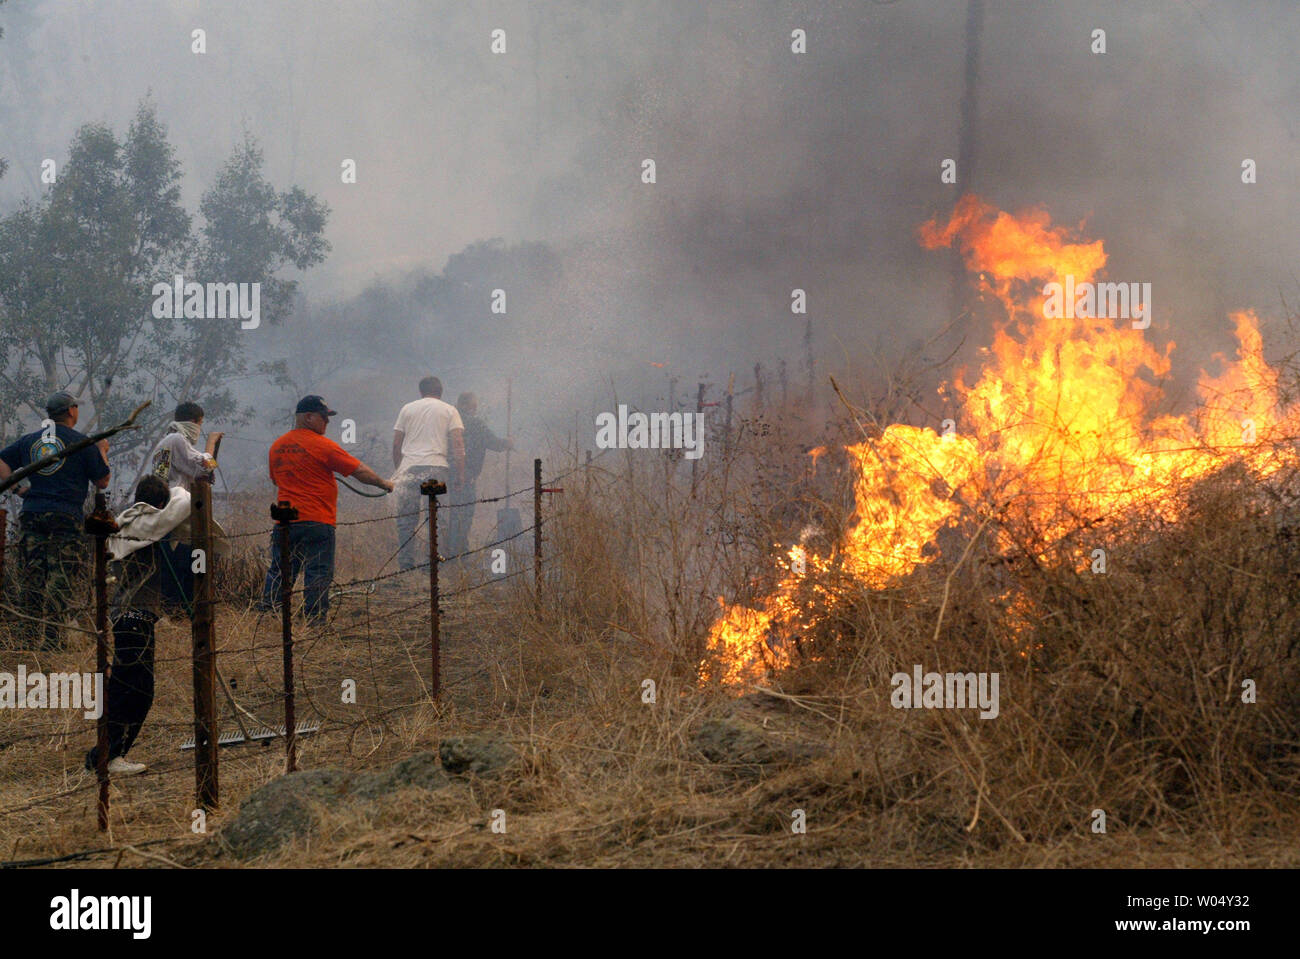 Jerry Newman (center in orange) uses hose to defend his property in Lakeside, California on October 26, 2003. Newman's residence was saved by family and neighbors as fire crews were stretched extremely thin. Fires spread from Ramona southwest to enter San Diego city limits consuming 80,000 acres, burning 50 buildings, and leaving 3 fatalities to date.  (UPI Photo/Tom Theobald) Stock Photo